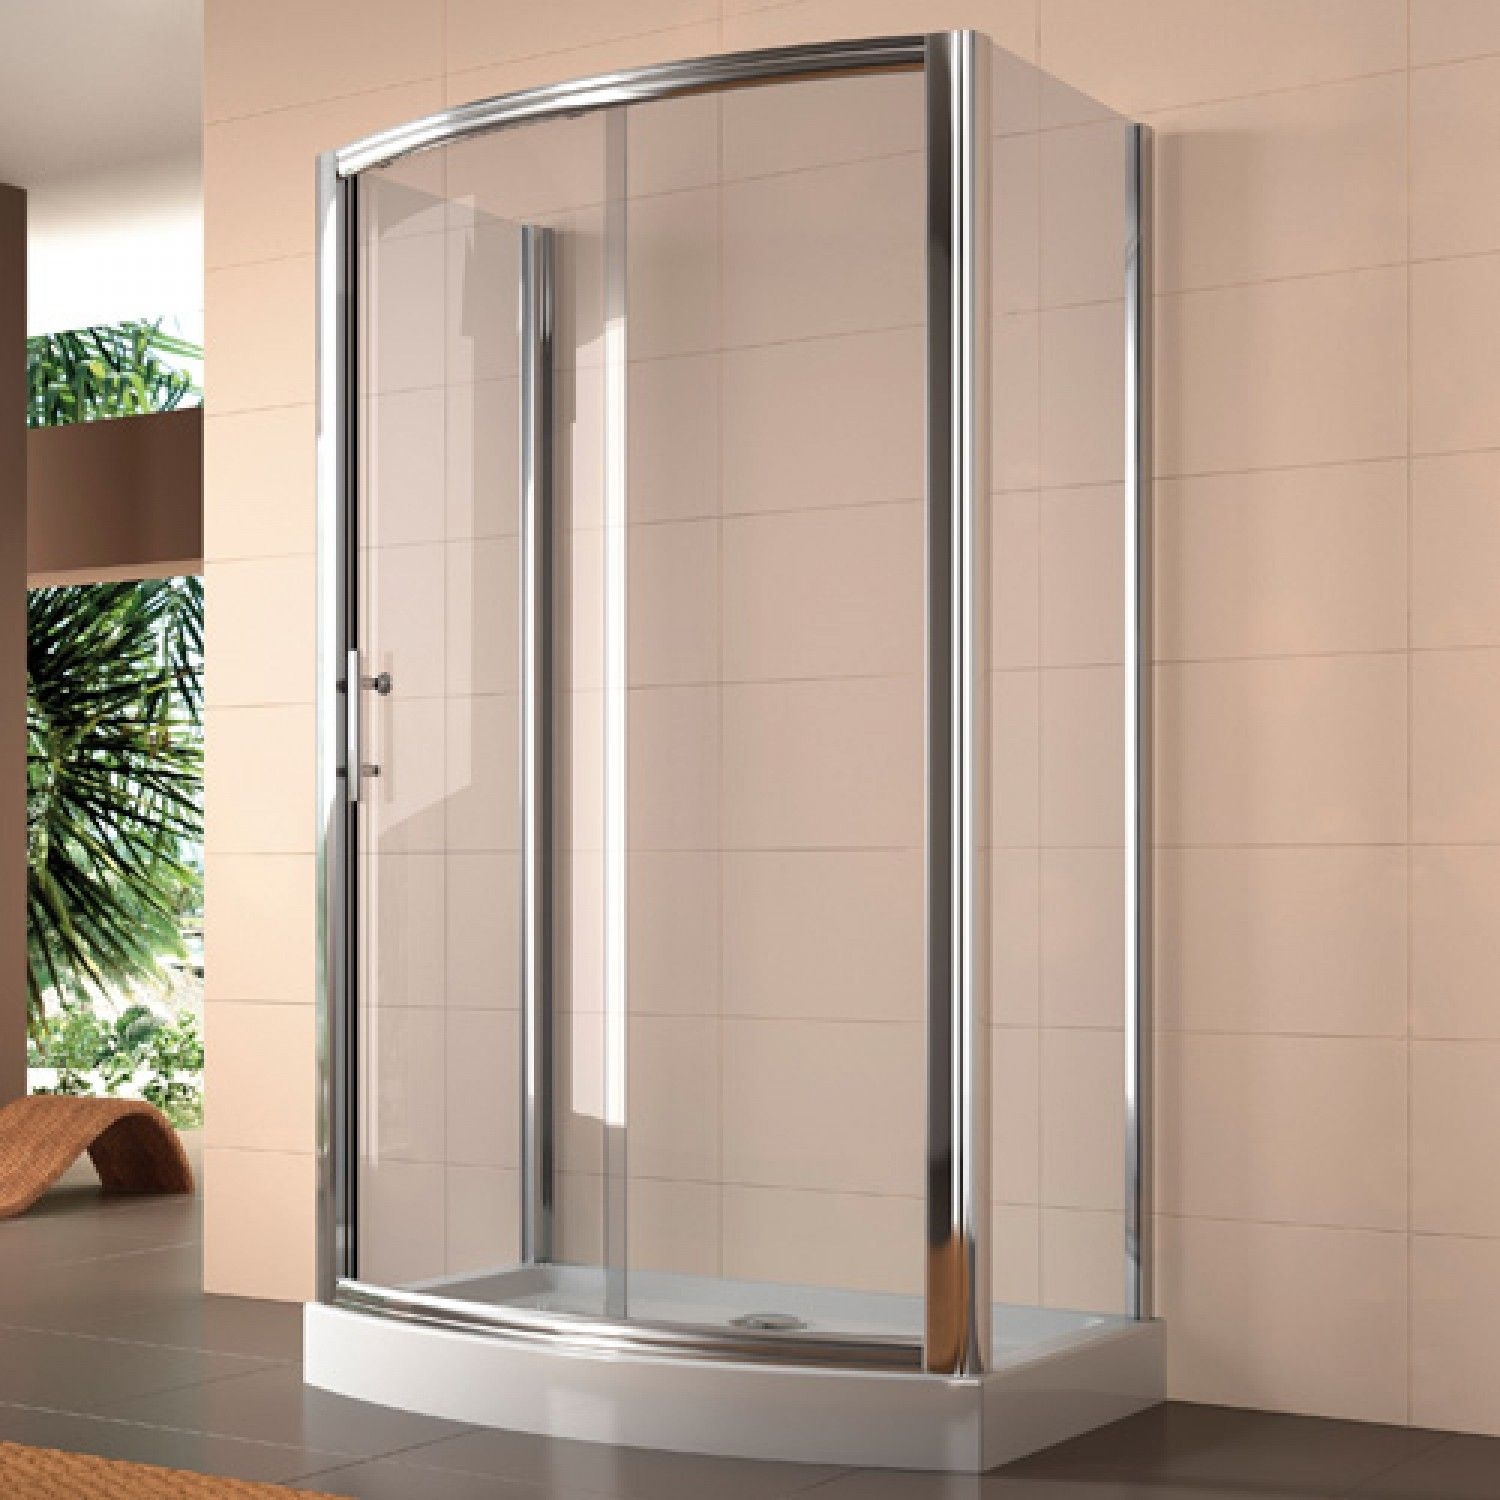 48 X 34 Rectangular Freestanding Shower Enclosure With Curved